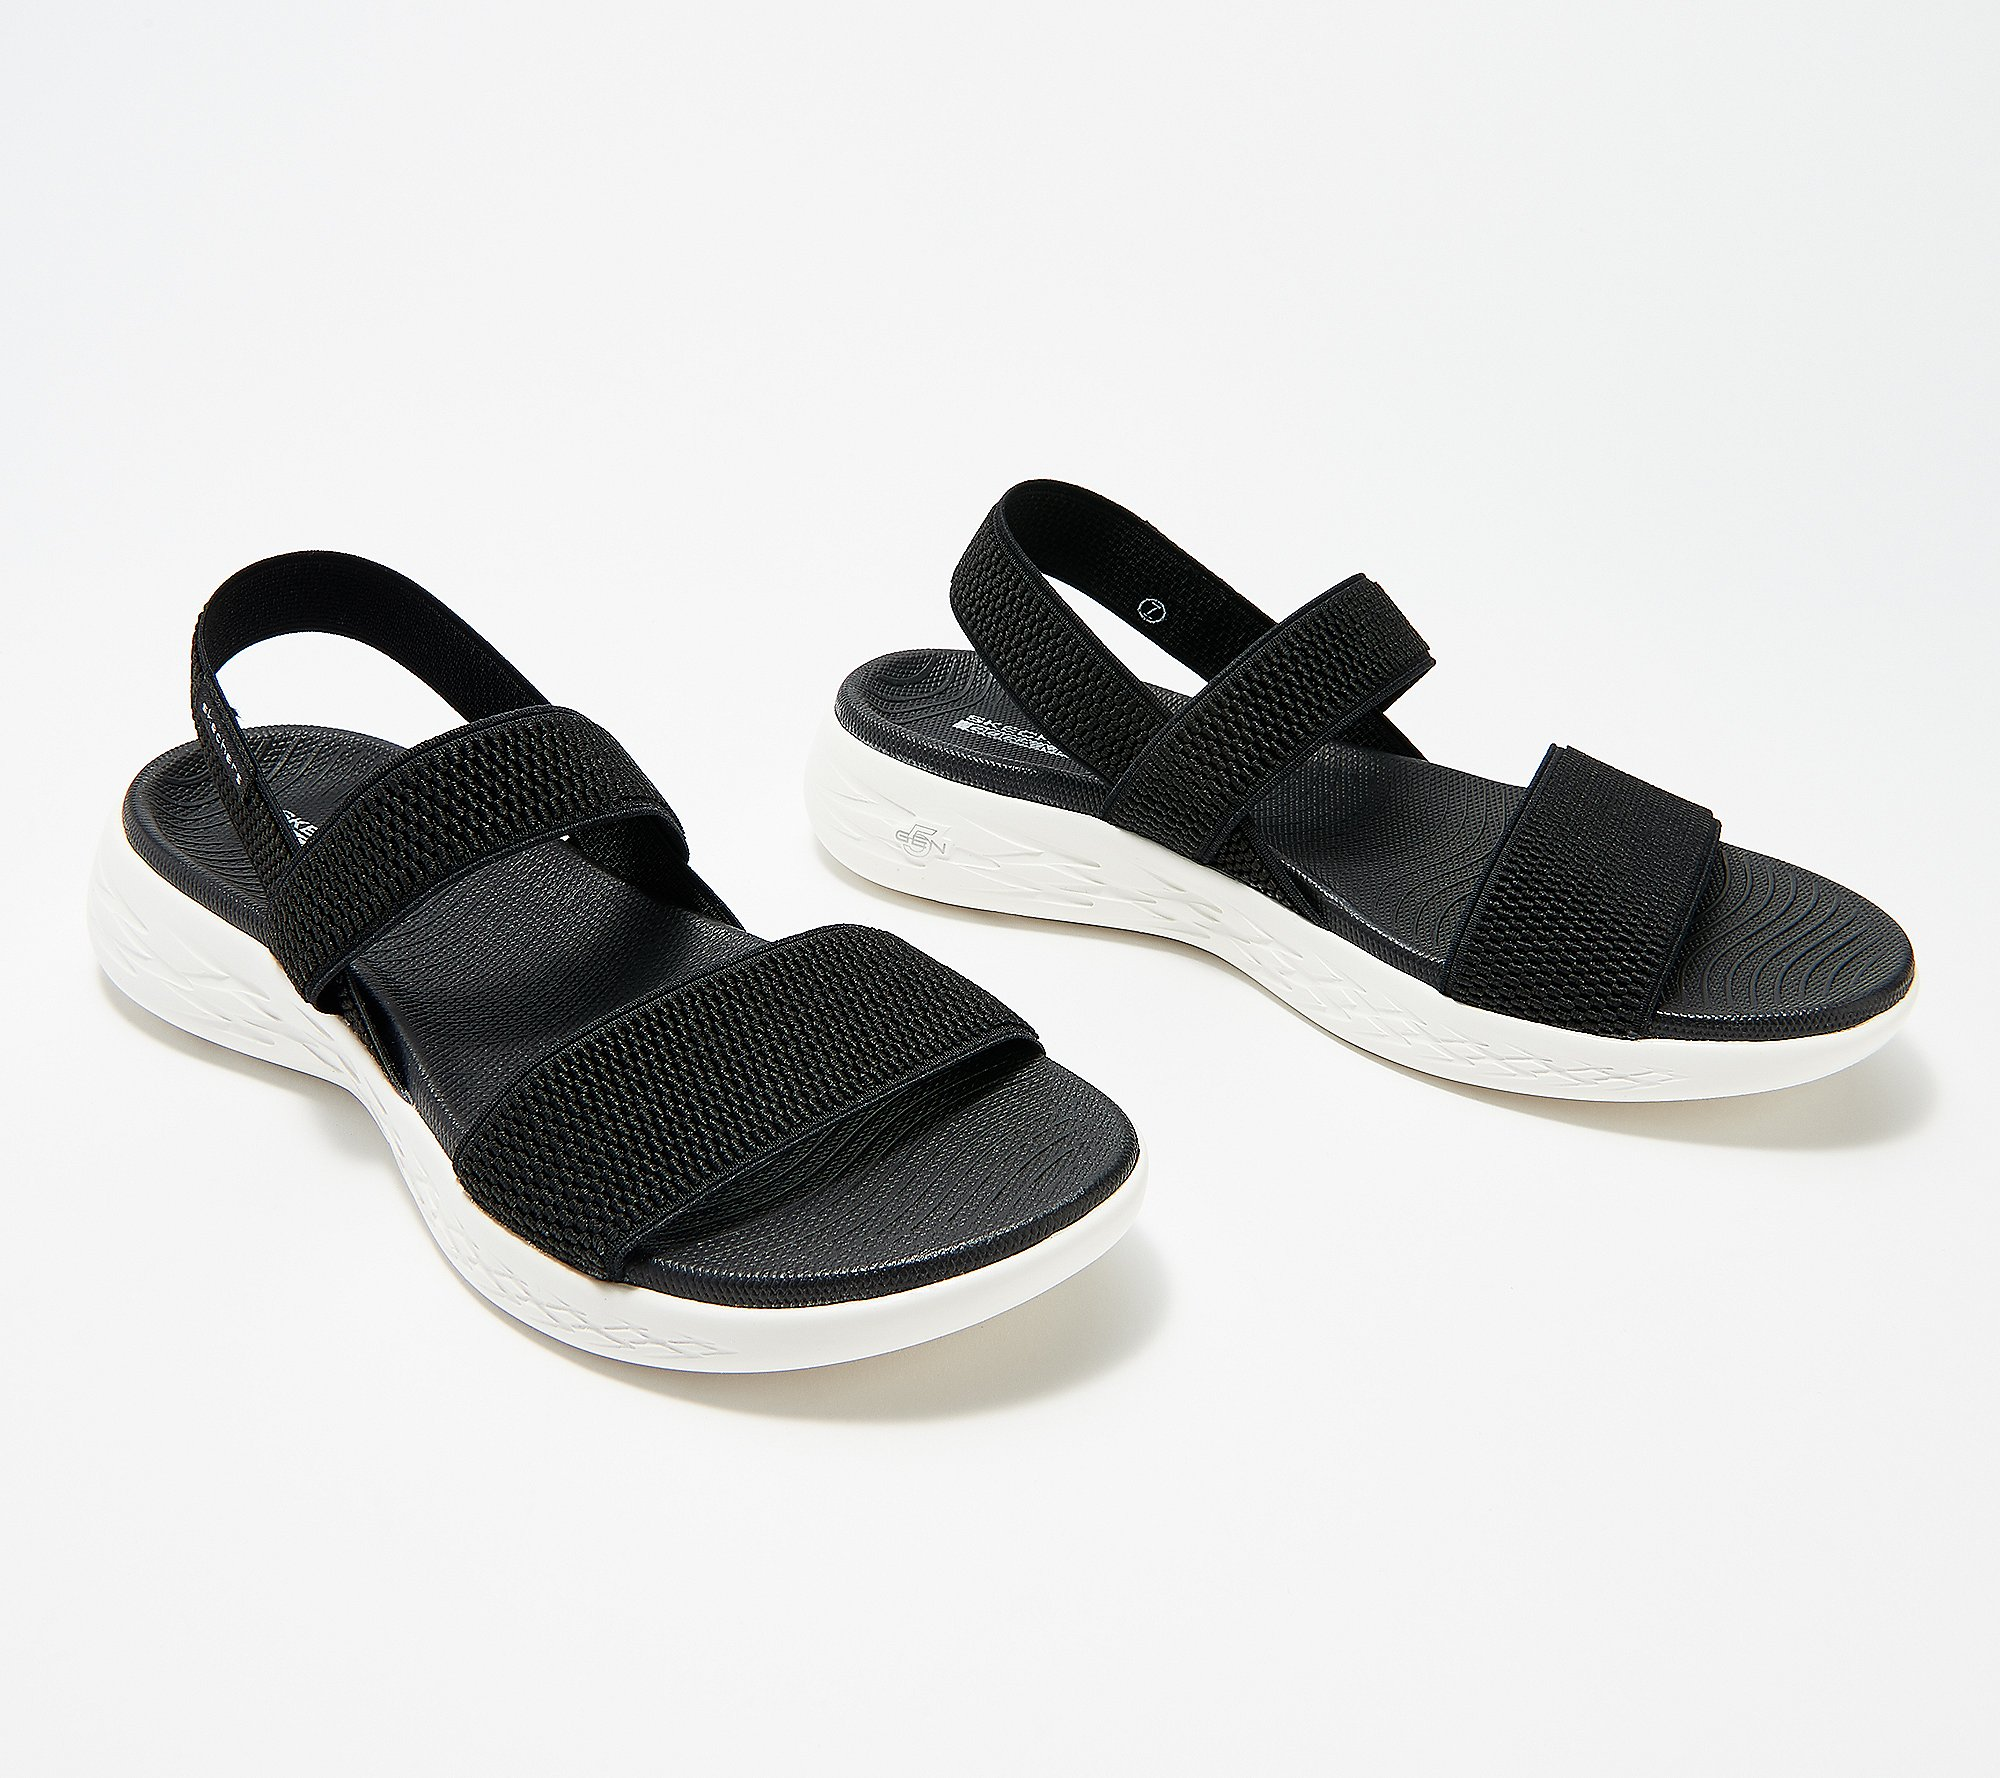 Skechers On The Go Gore Back Strap Sandals Flawless Qvc Com